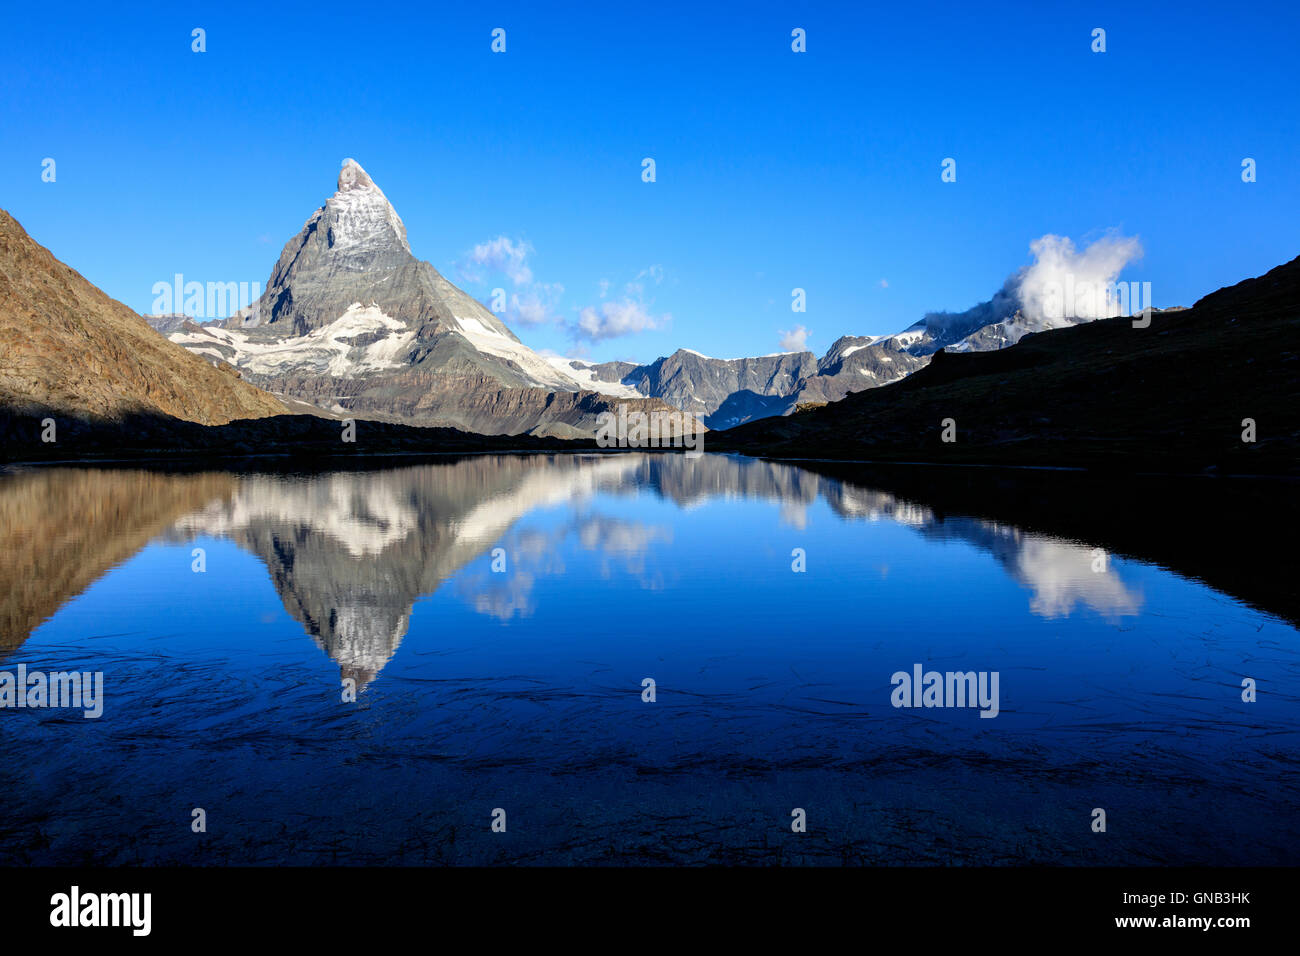 The Matterhorn reflected in the blue waters of Lake Stellisee Zermatt Pennine Alps Canton of Valais Switzerland - Stock Image